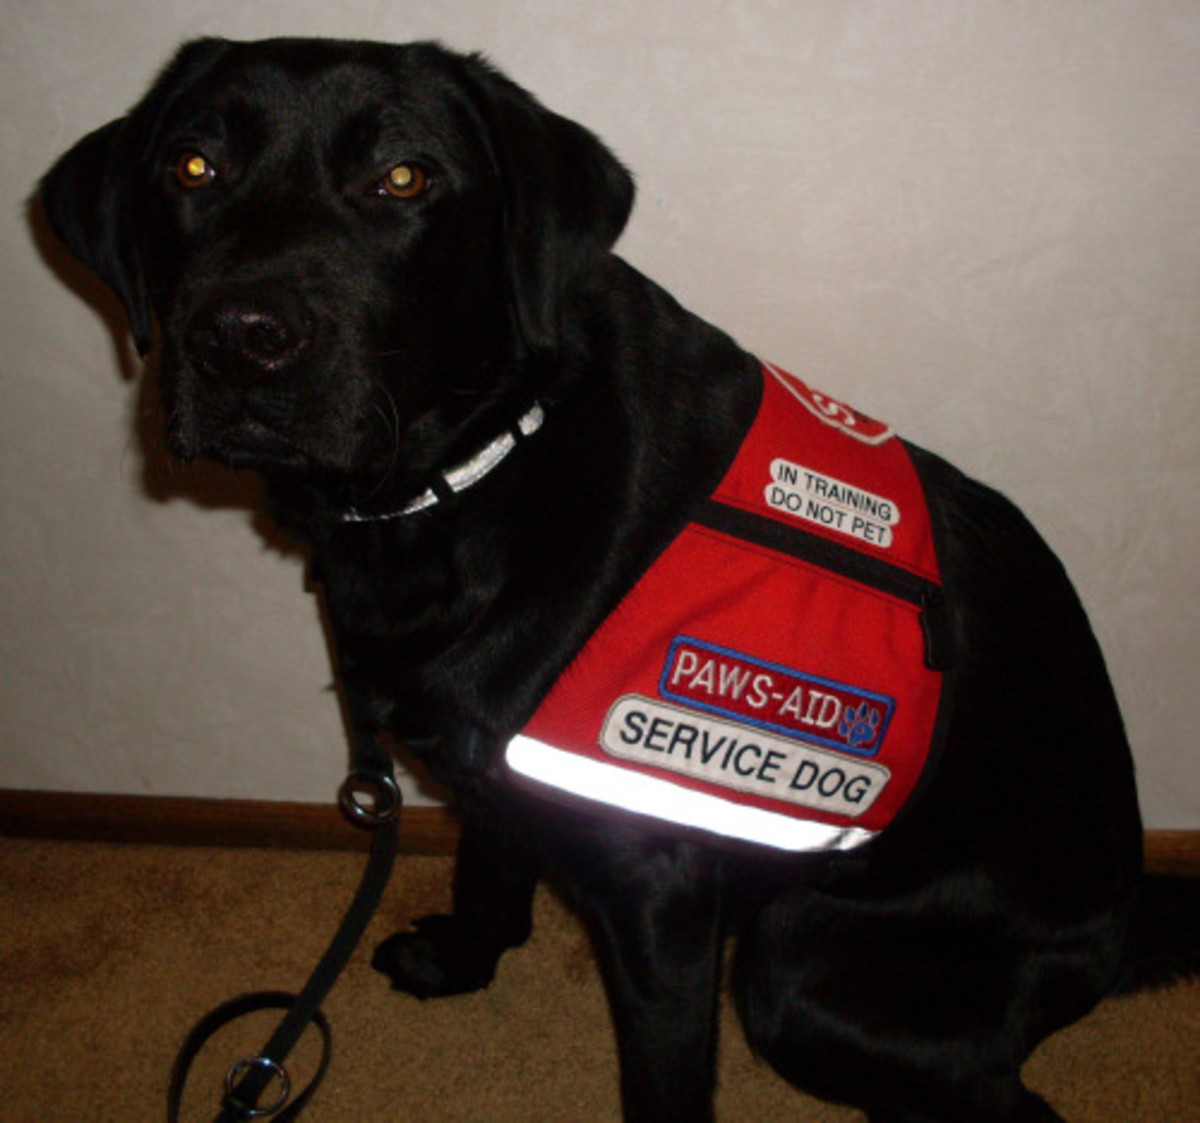 A service dog for a person with an invisible disability.